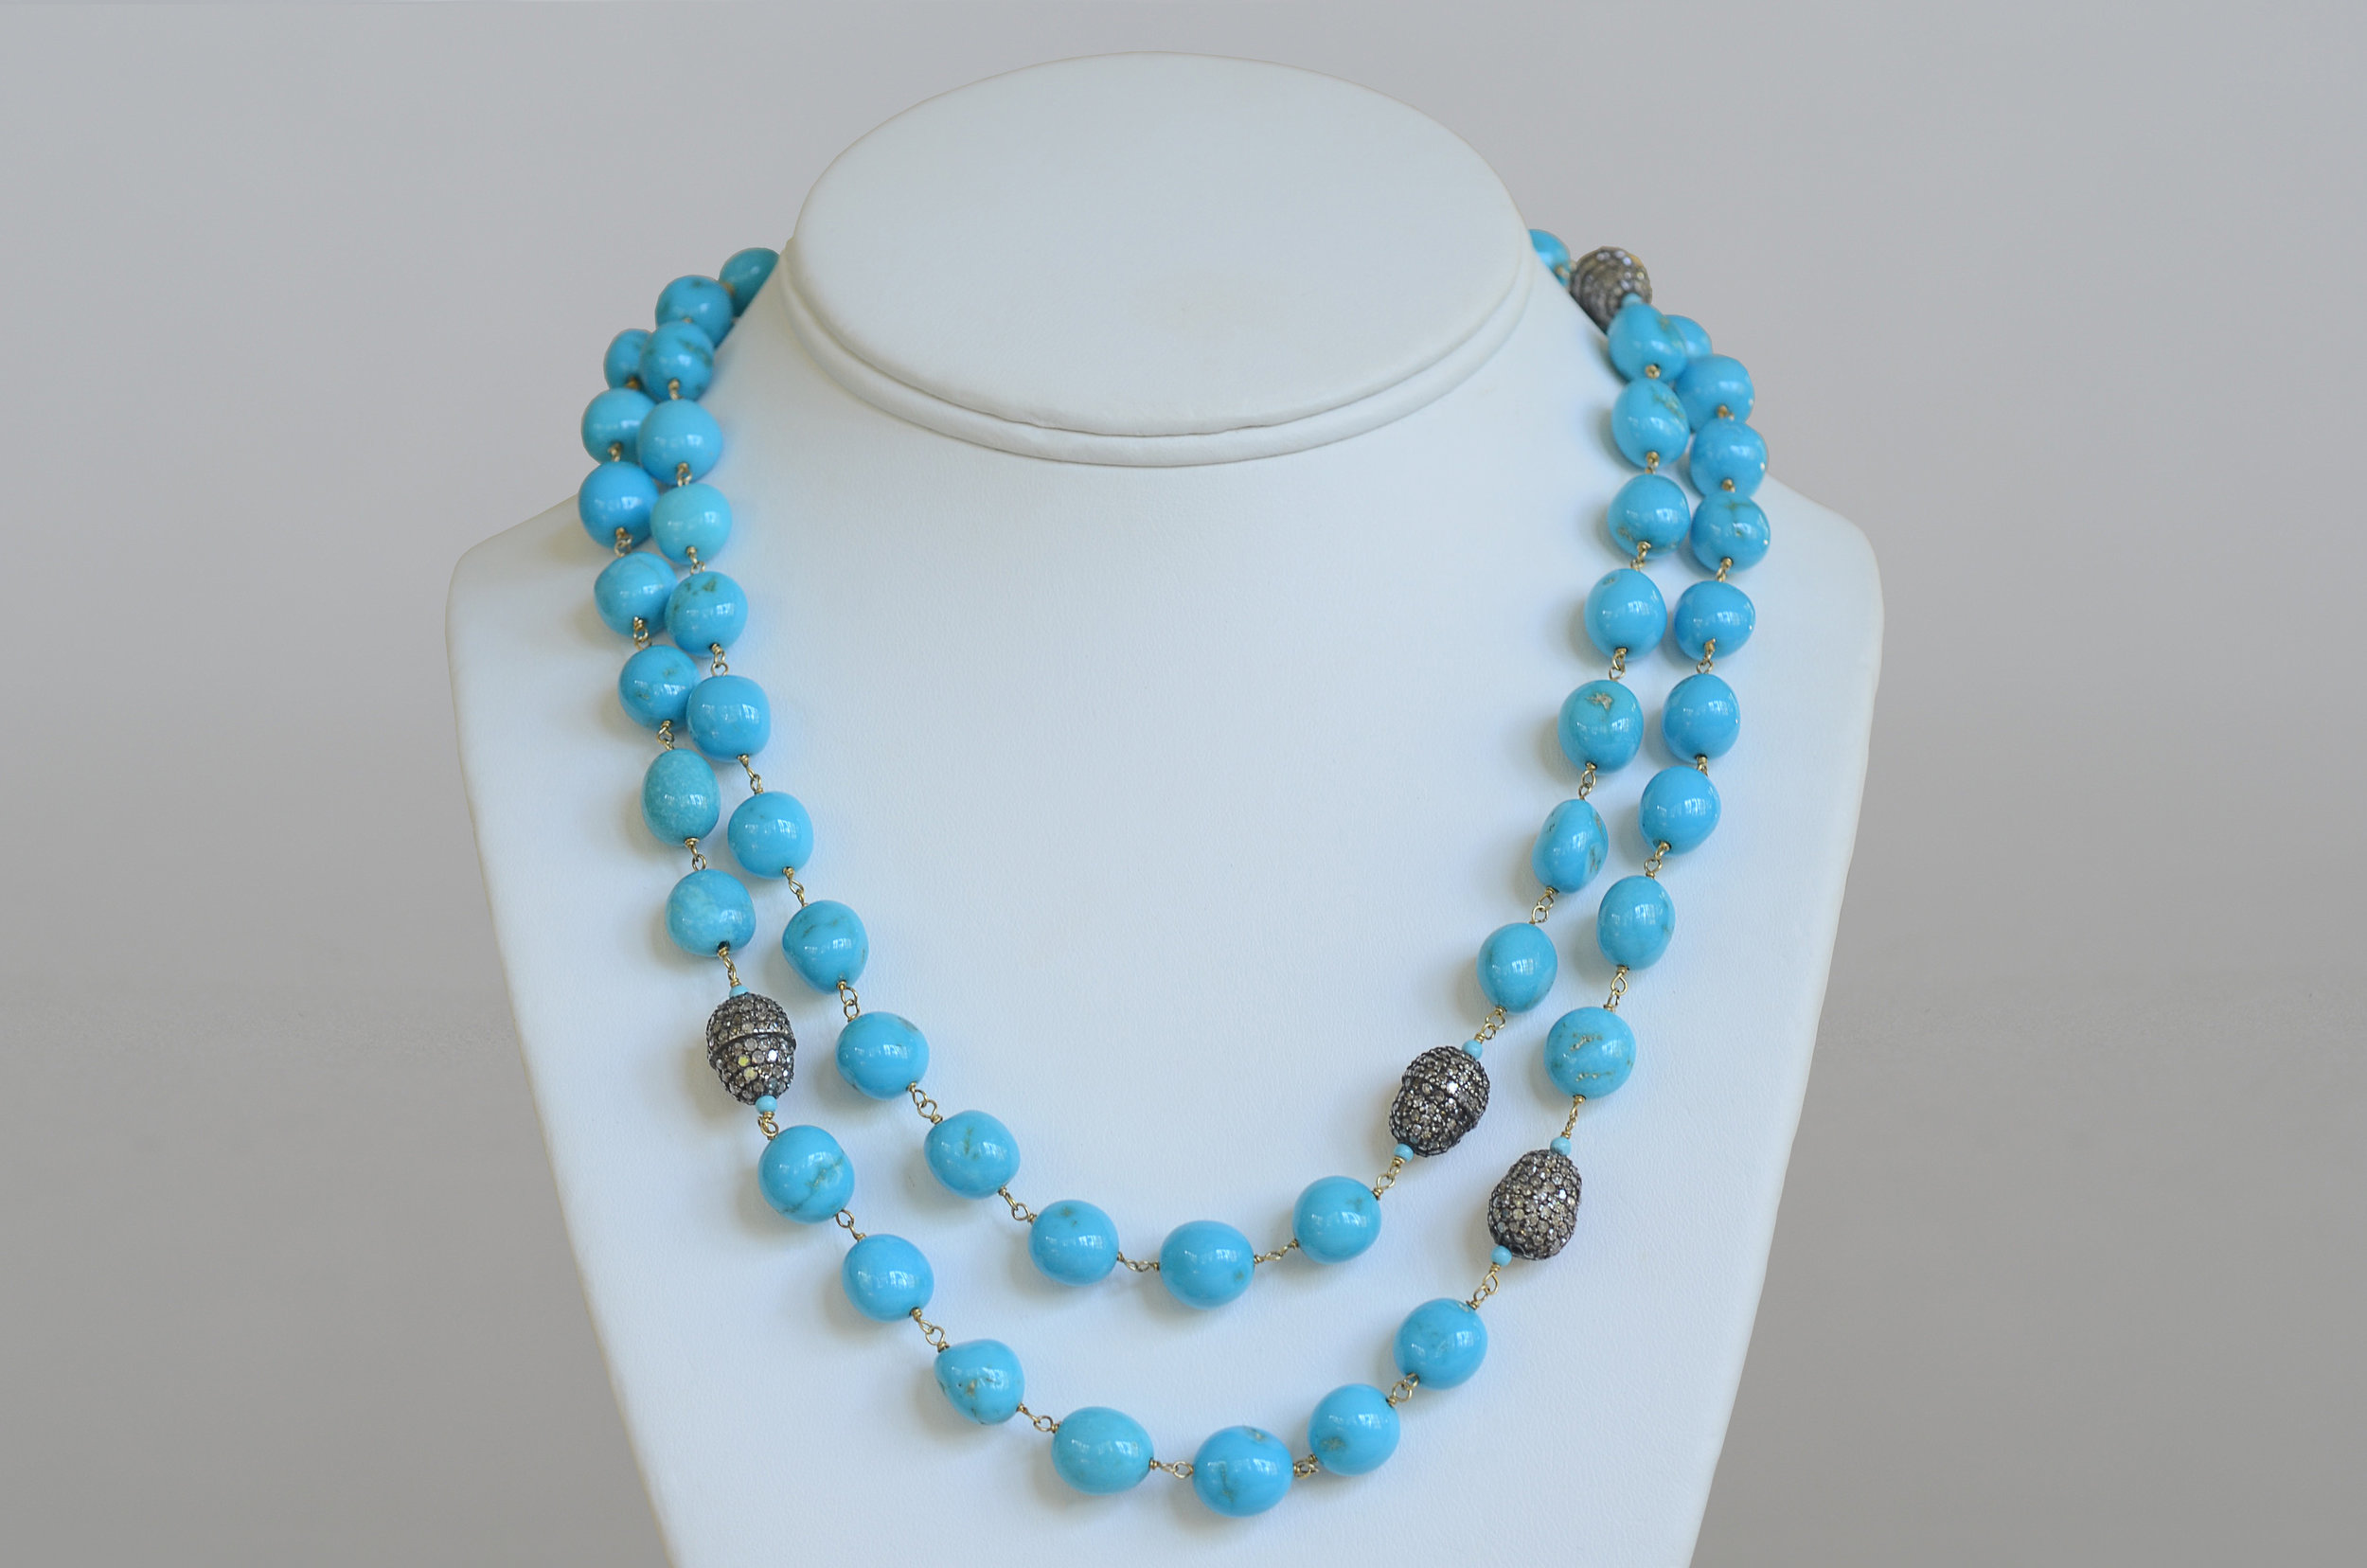 Turquoise Bead Necklace accented with Pave Diamond Beads set in 18kt Yellow Gold and Sterling